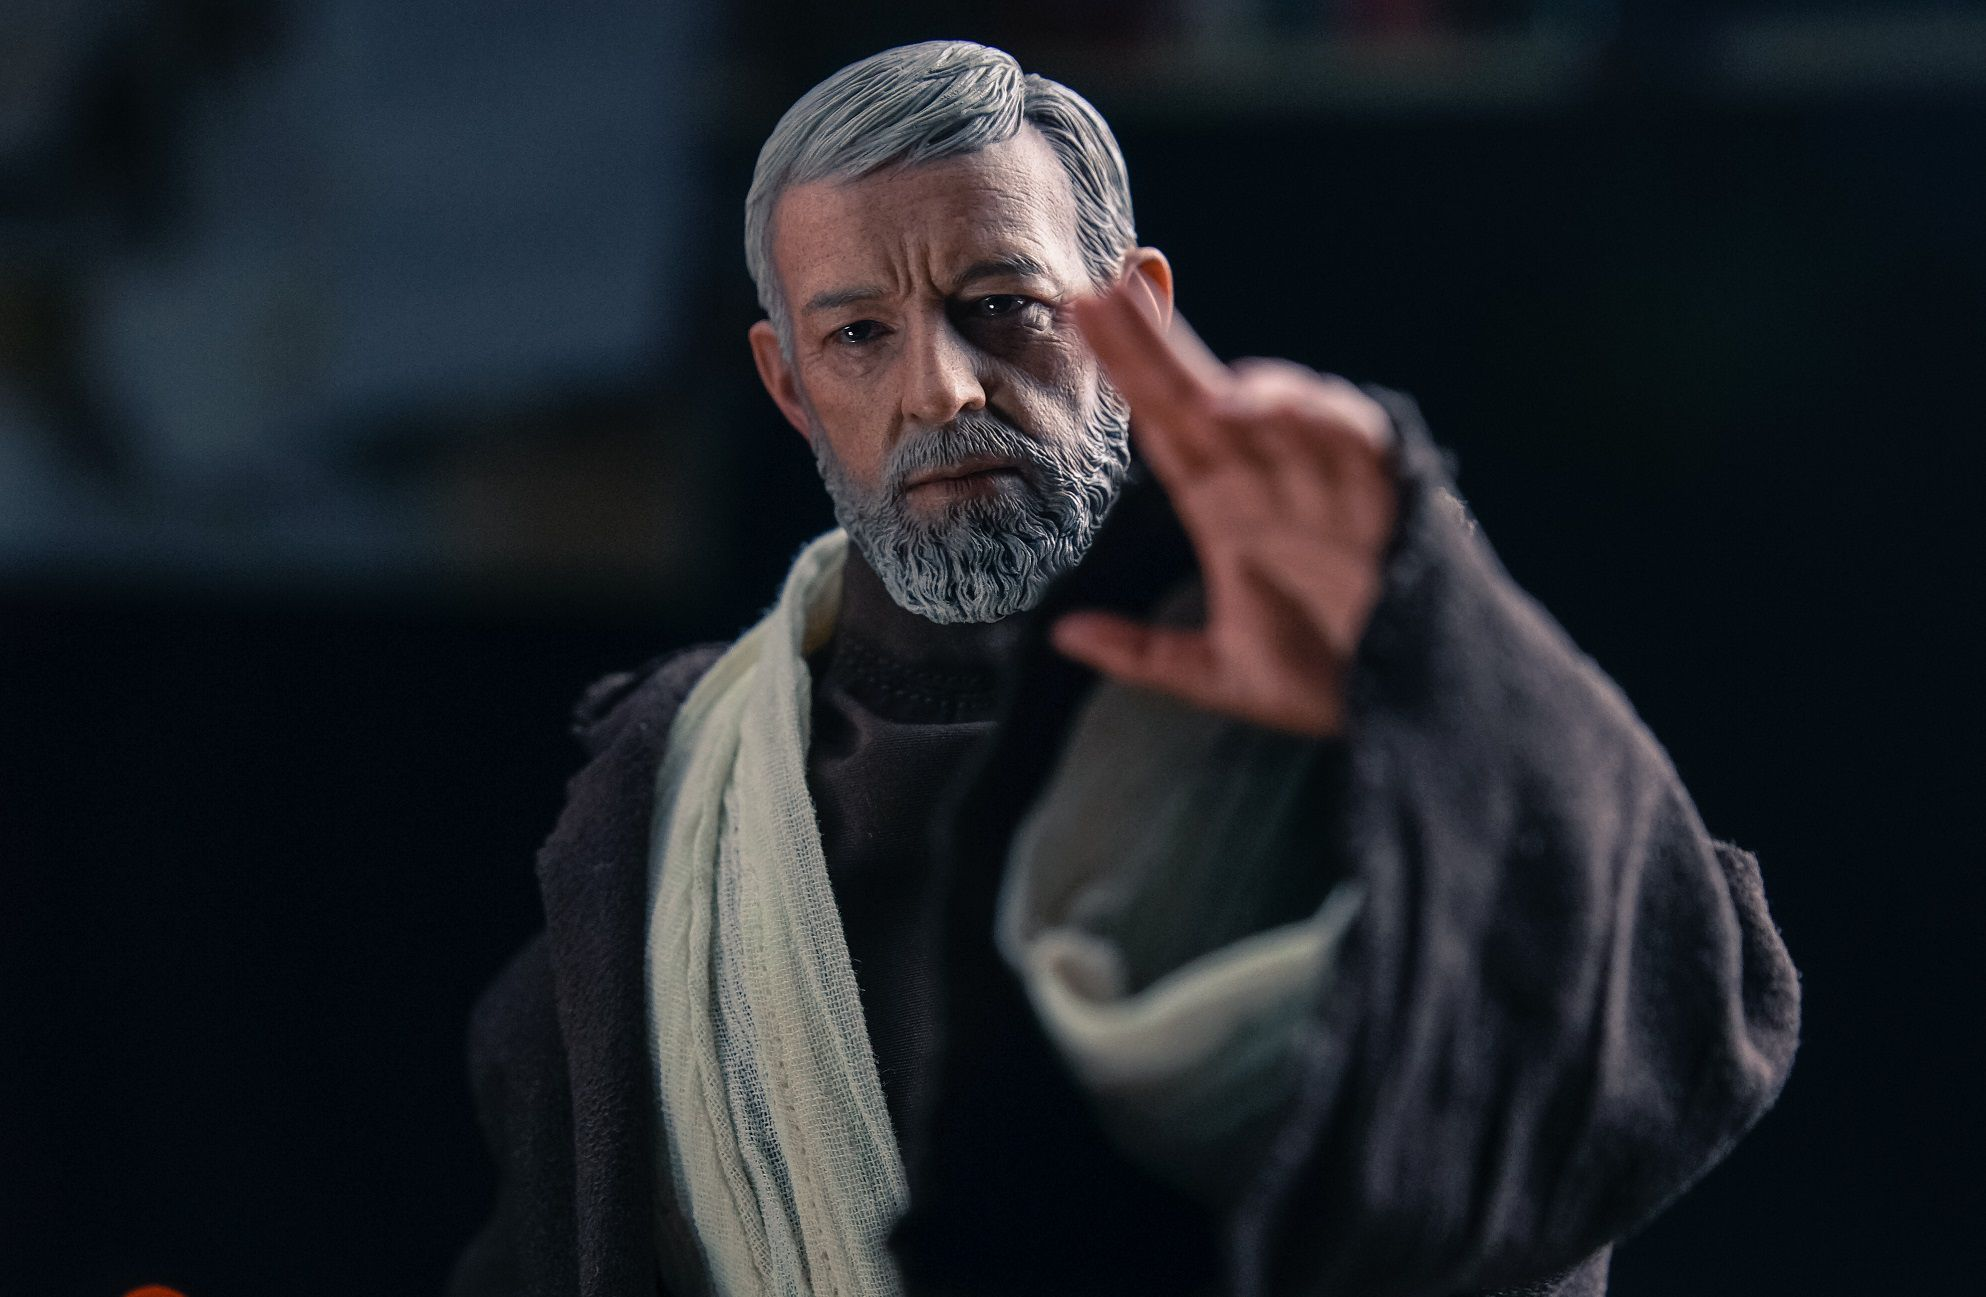 How Many Survived the Great Jedi Purge in Star Wars?